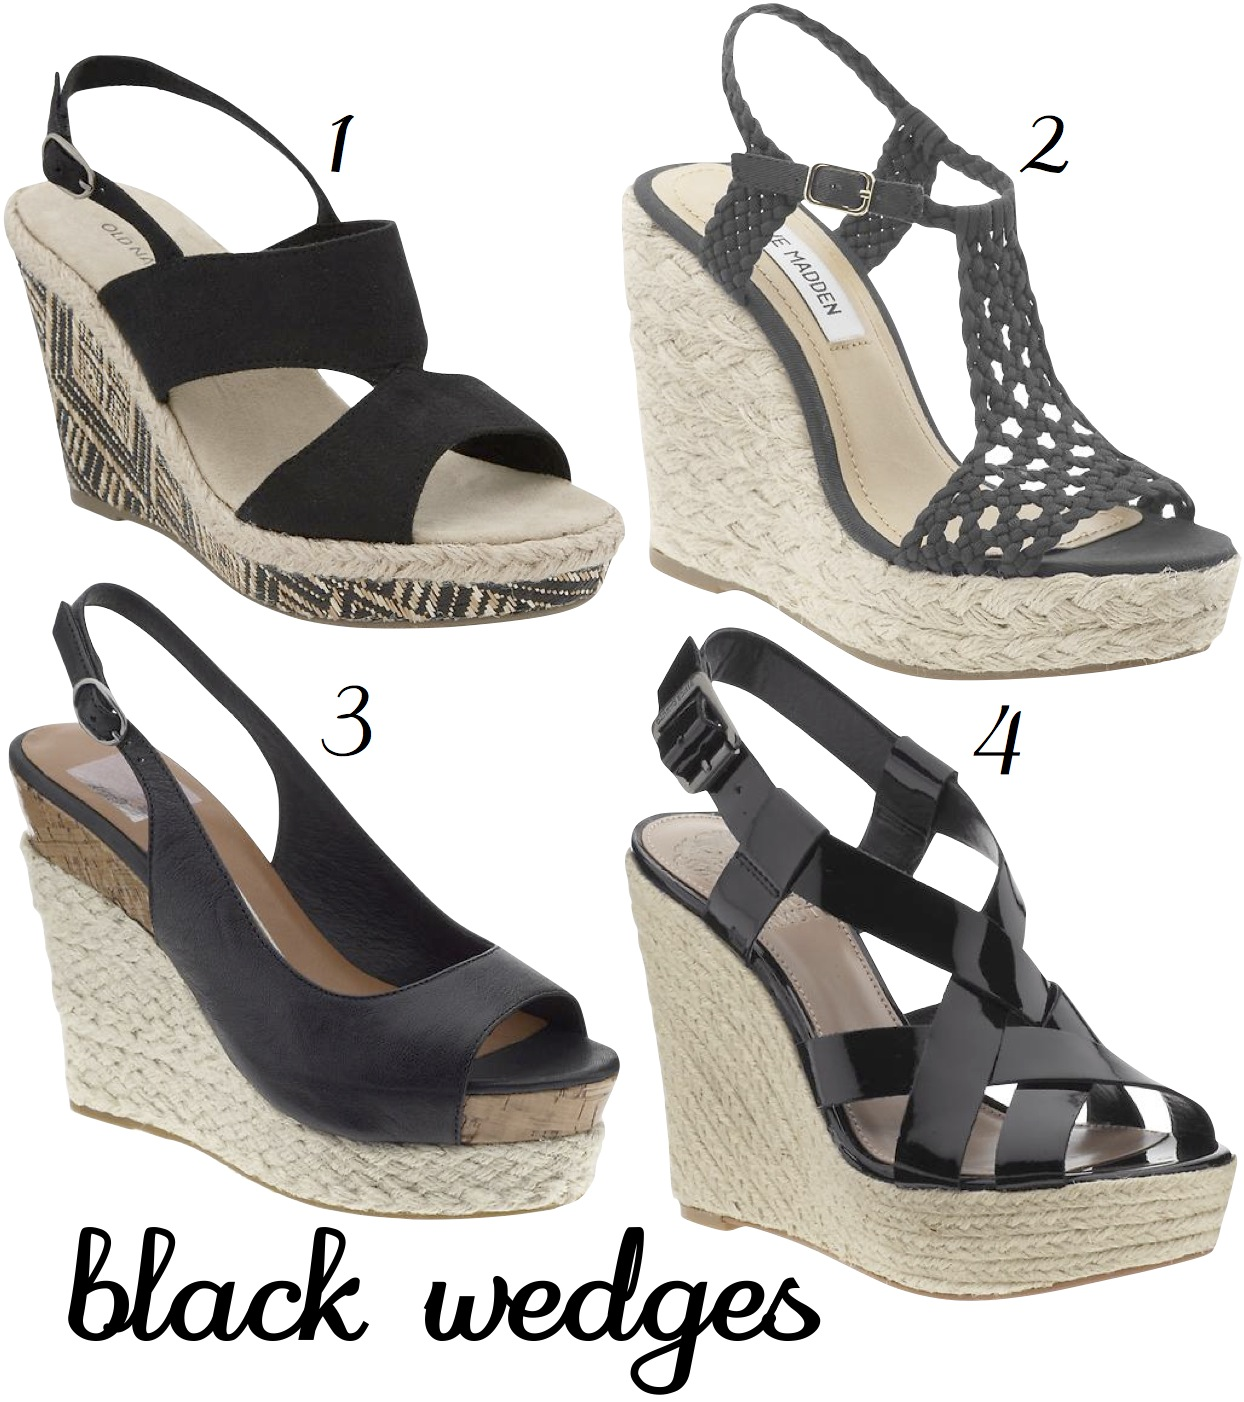 Wedges Information